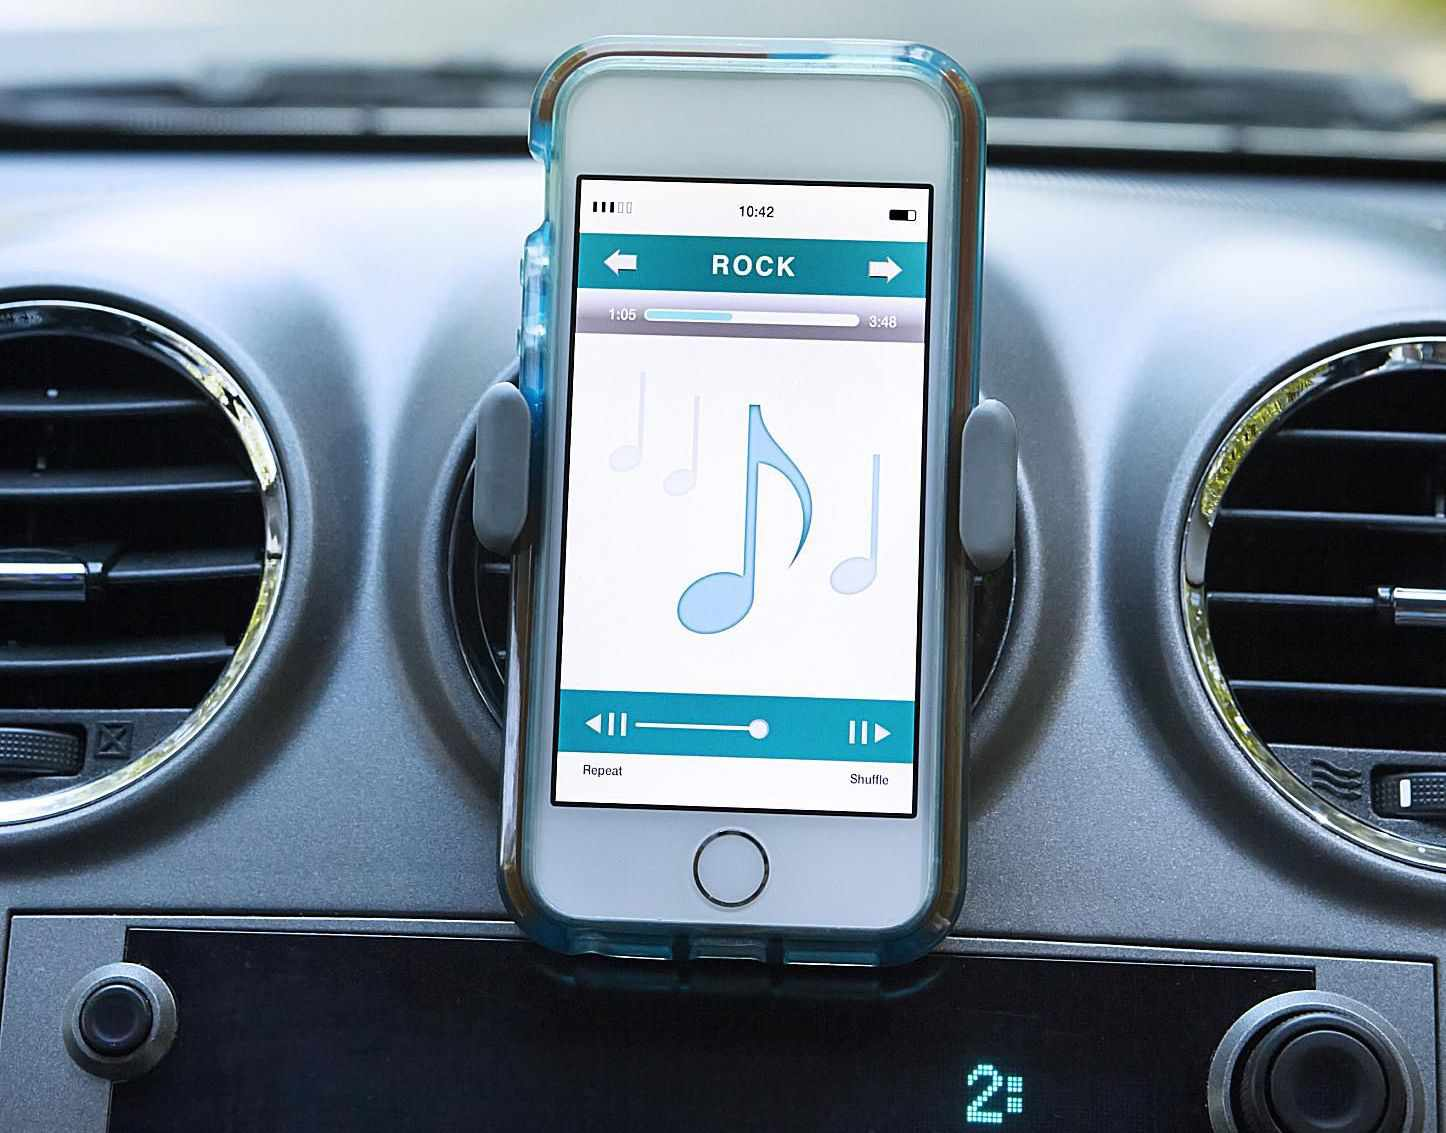 iPhone playing rock music through a Bluetooth connection in car